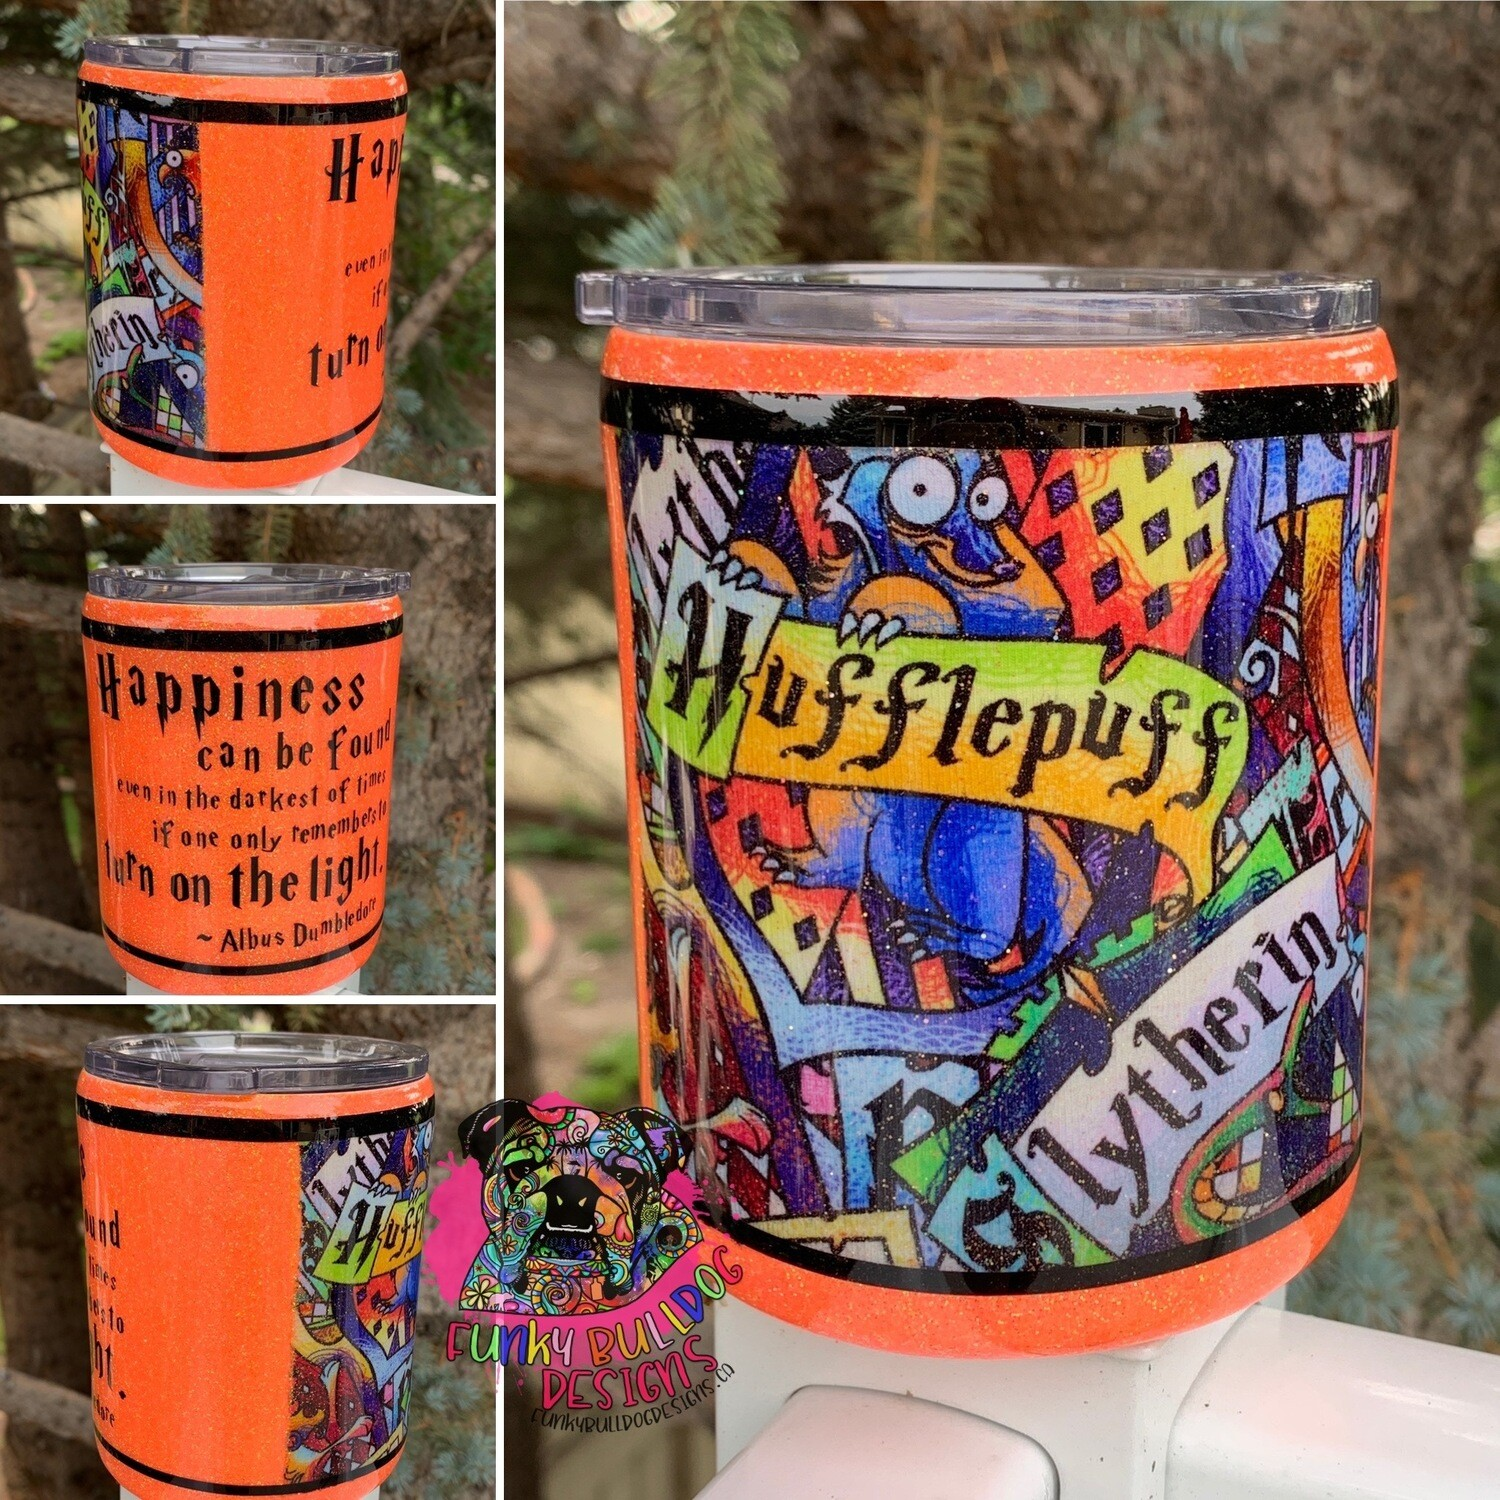 14oz stainless steel low ball fabric and glitter tumbler - Happiness can be found even in the darkest of times